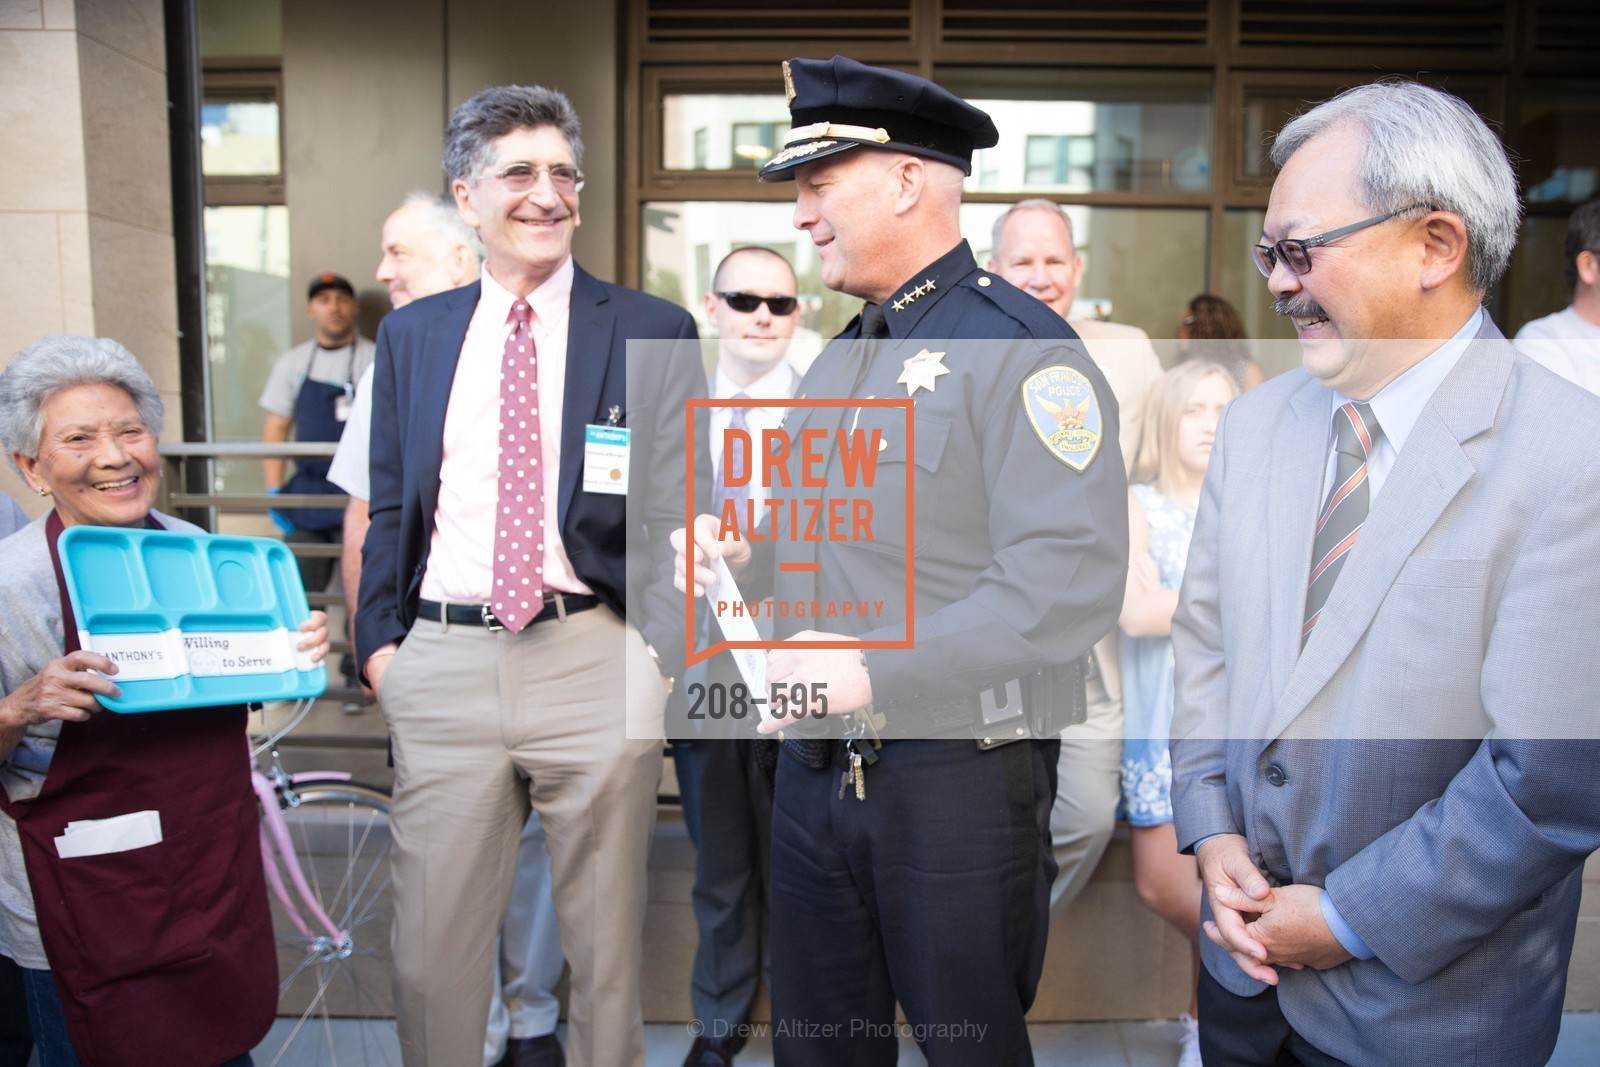 Carmelita Lozano, Dennis Aftergut, Greg Suhr, Ed Lee, ST. ANTHONY'S Dining Room Ribbon Cutting Ceremony, US, October 5th, 2014,Drew Altizer, Drew Altizer Photography, full-service agency, private events, San Francisco photographer, photographer california